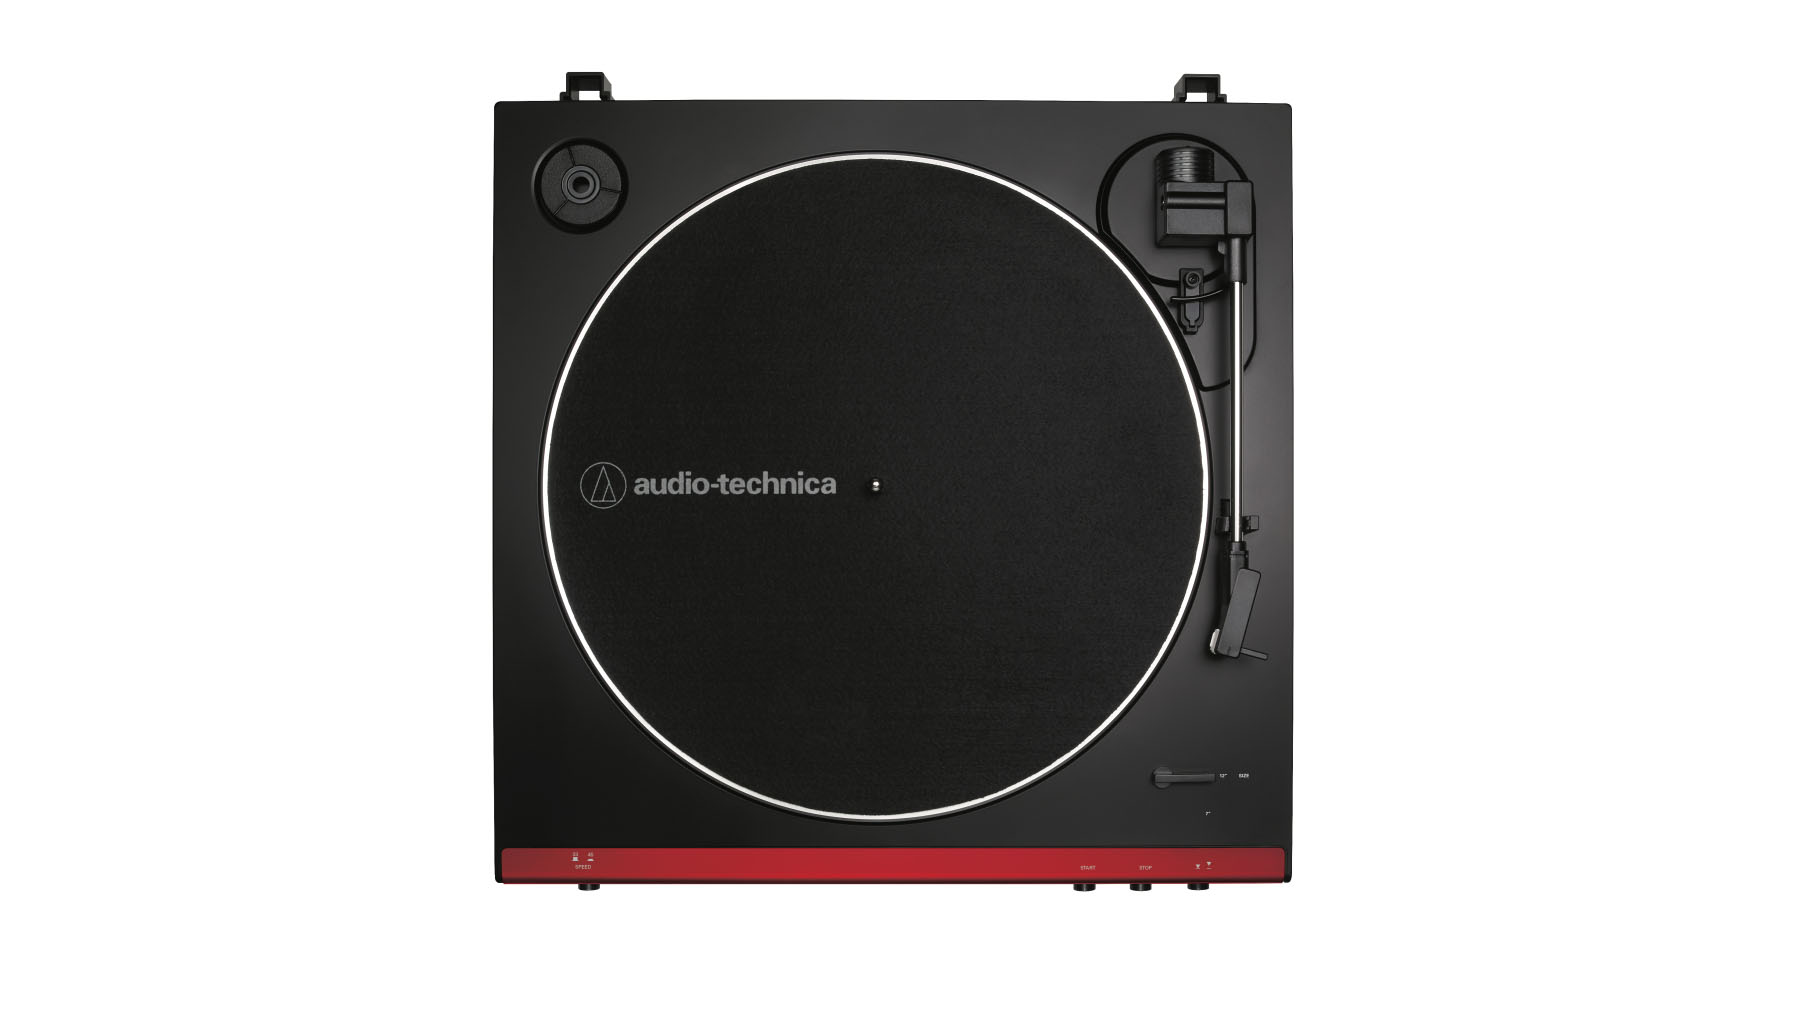 Audio-Technica unveils four new LP60 turntables to suit all vinyl fans